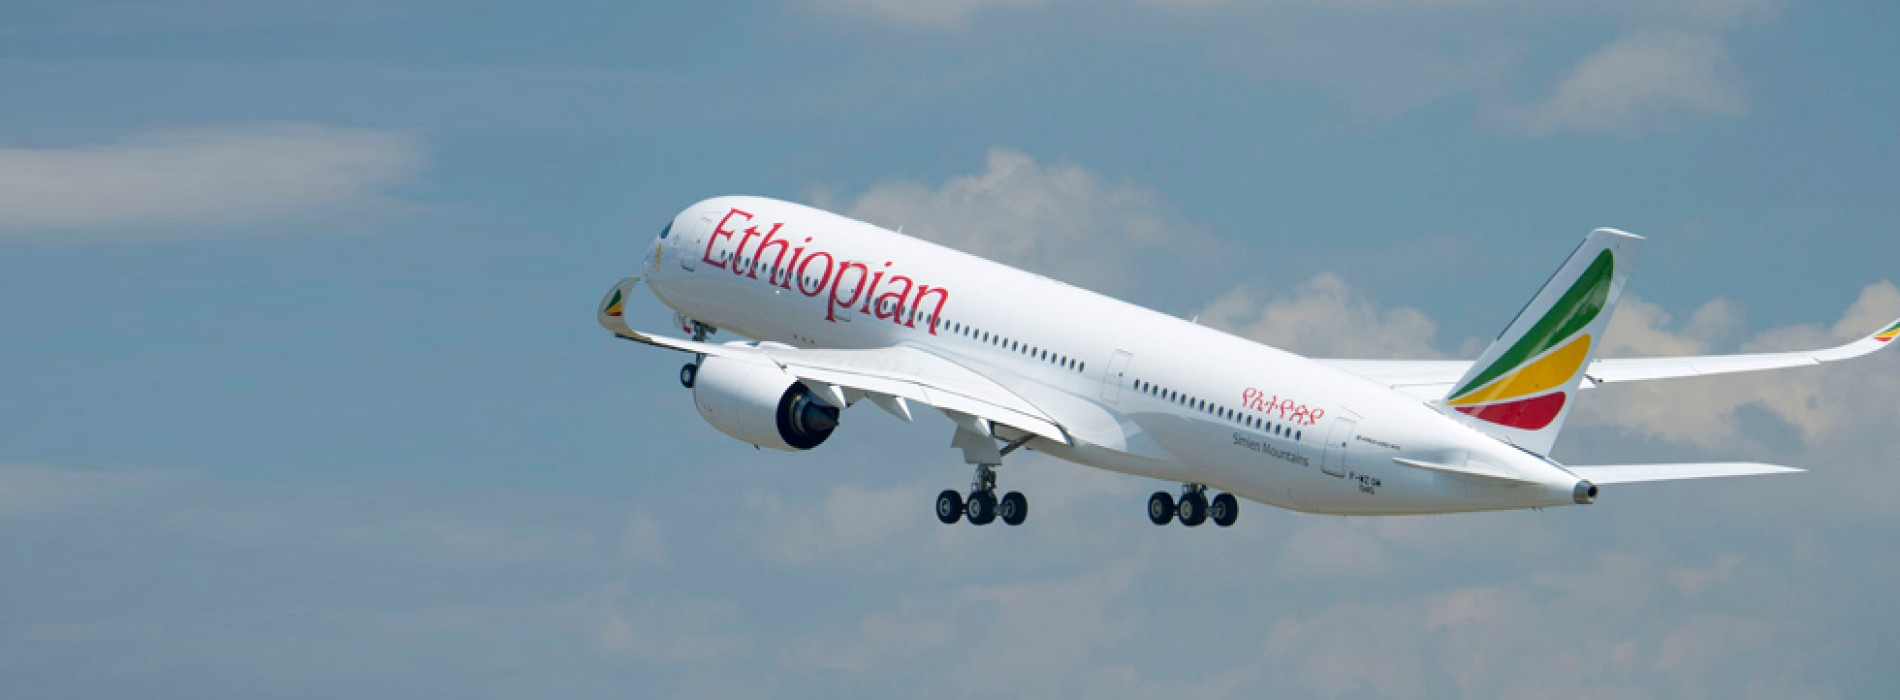 Ethiopian sets yet another year of growth milestones